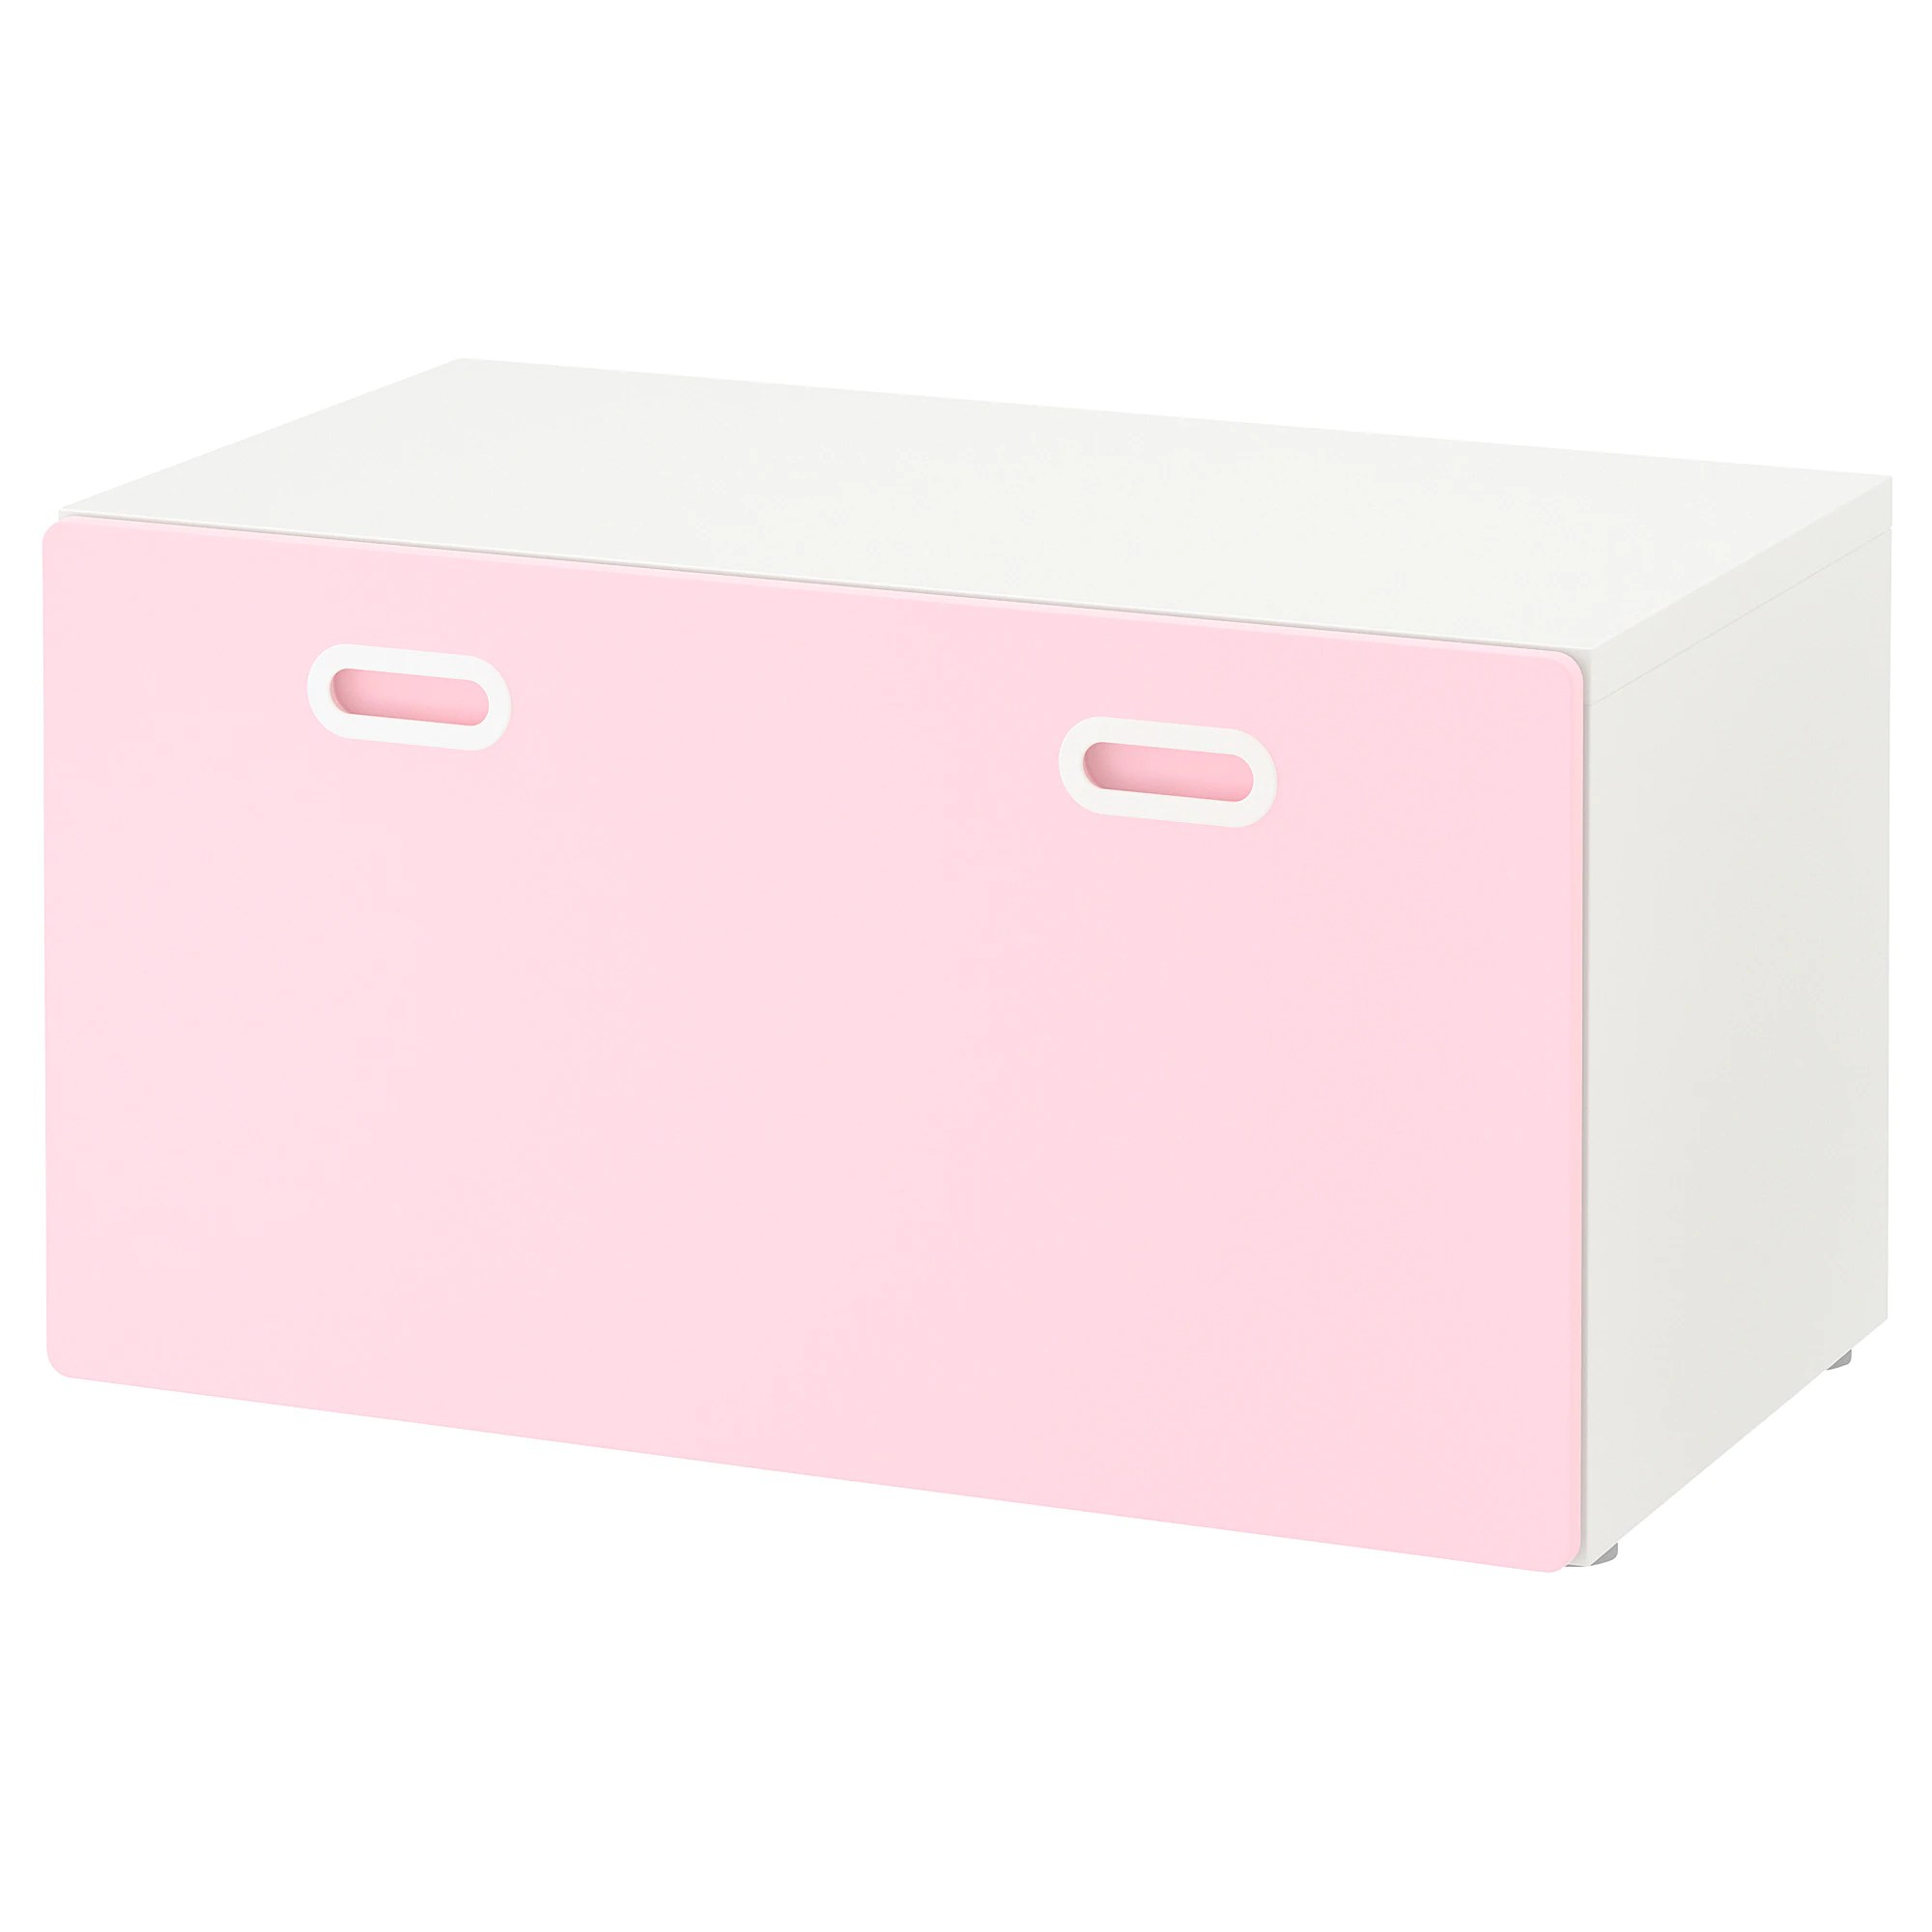 Complete Kinderkamer Ikea Bench With Toy Storage Stuva Fritids White Light Pink